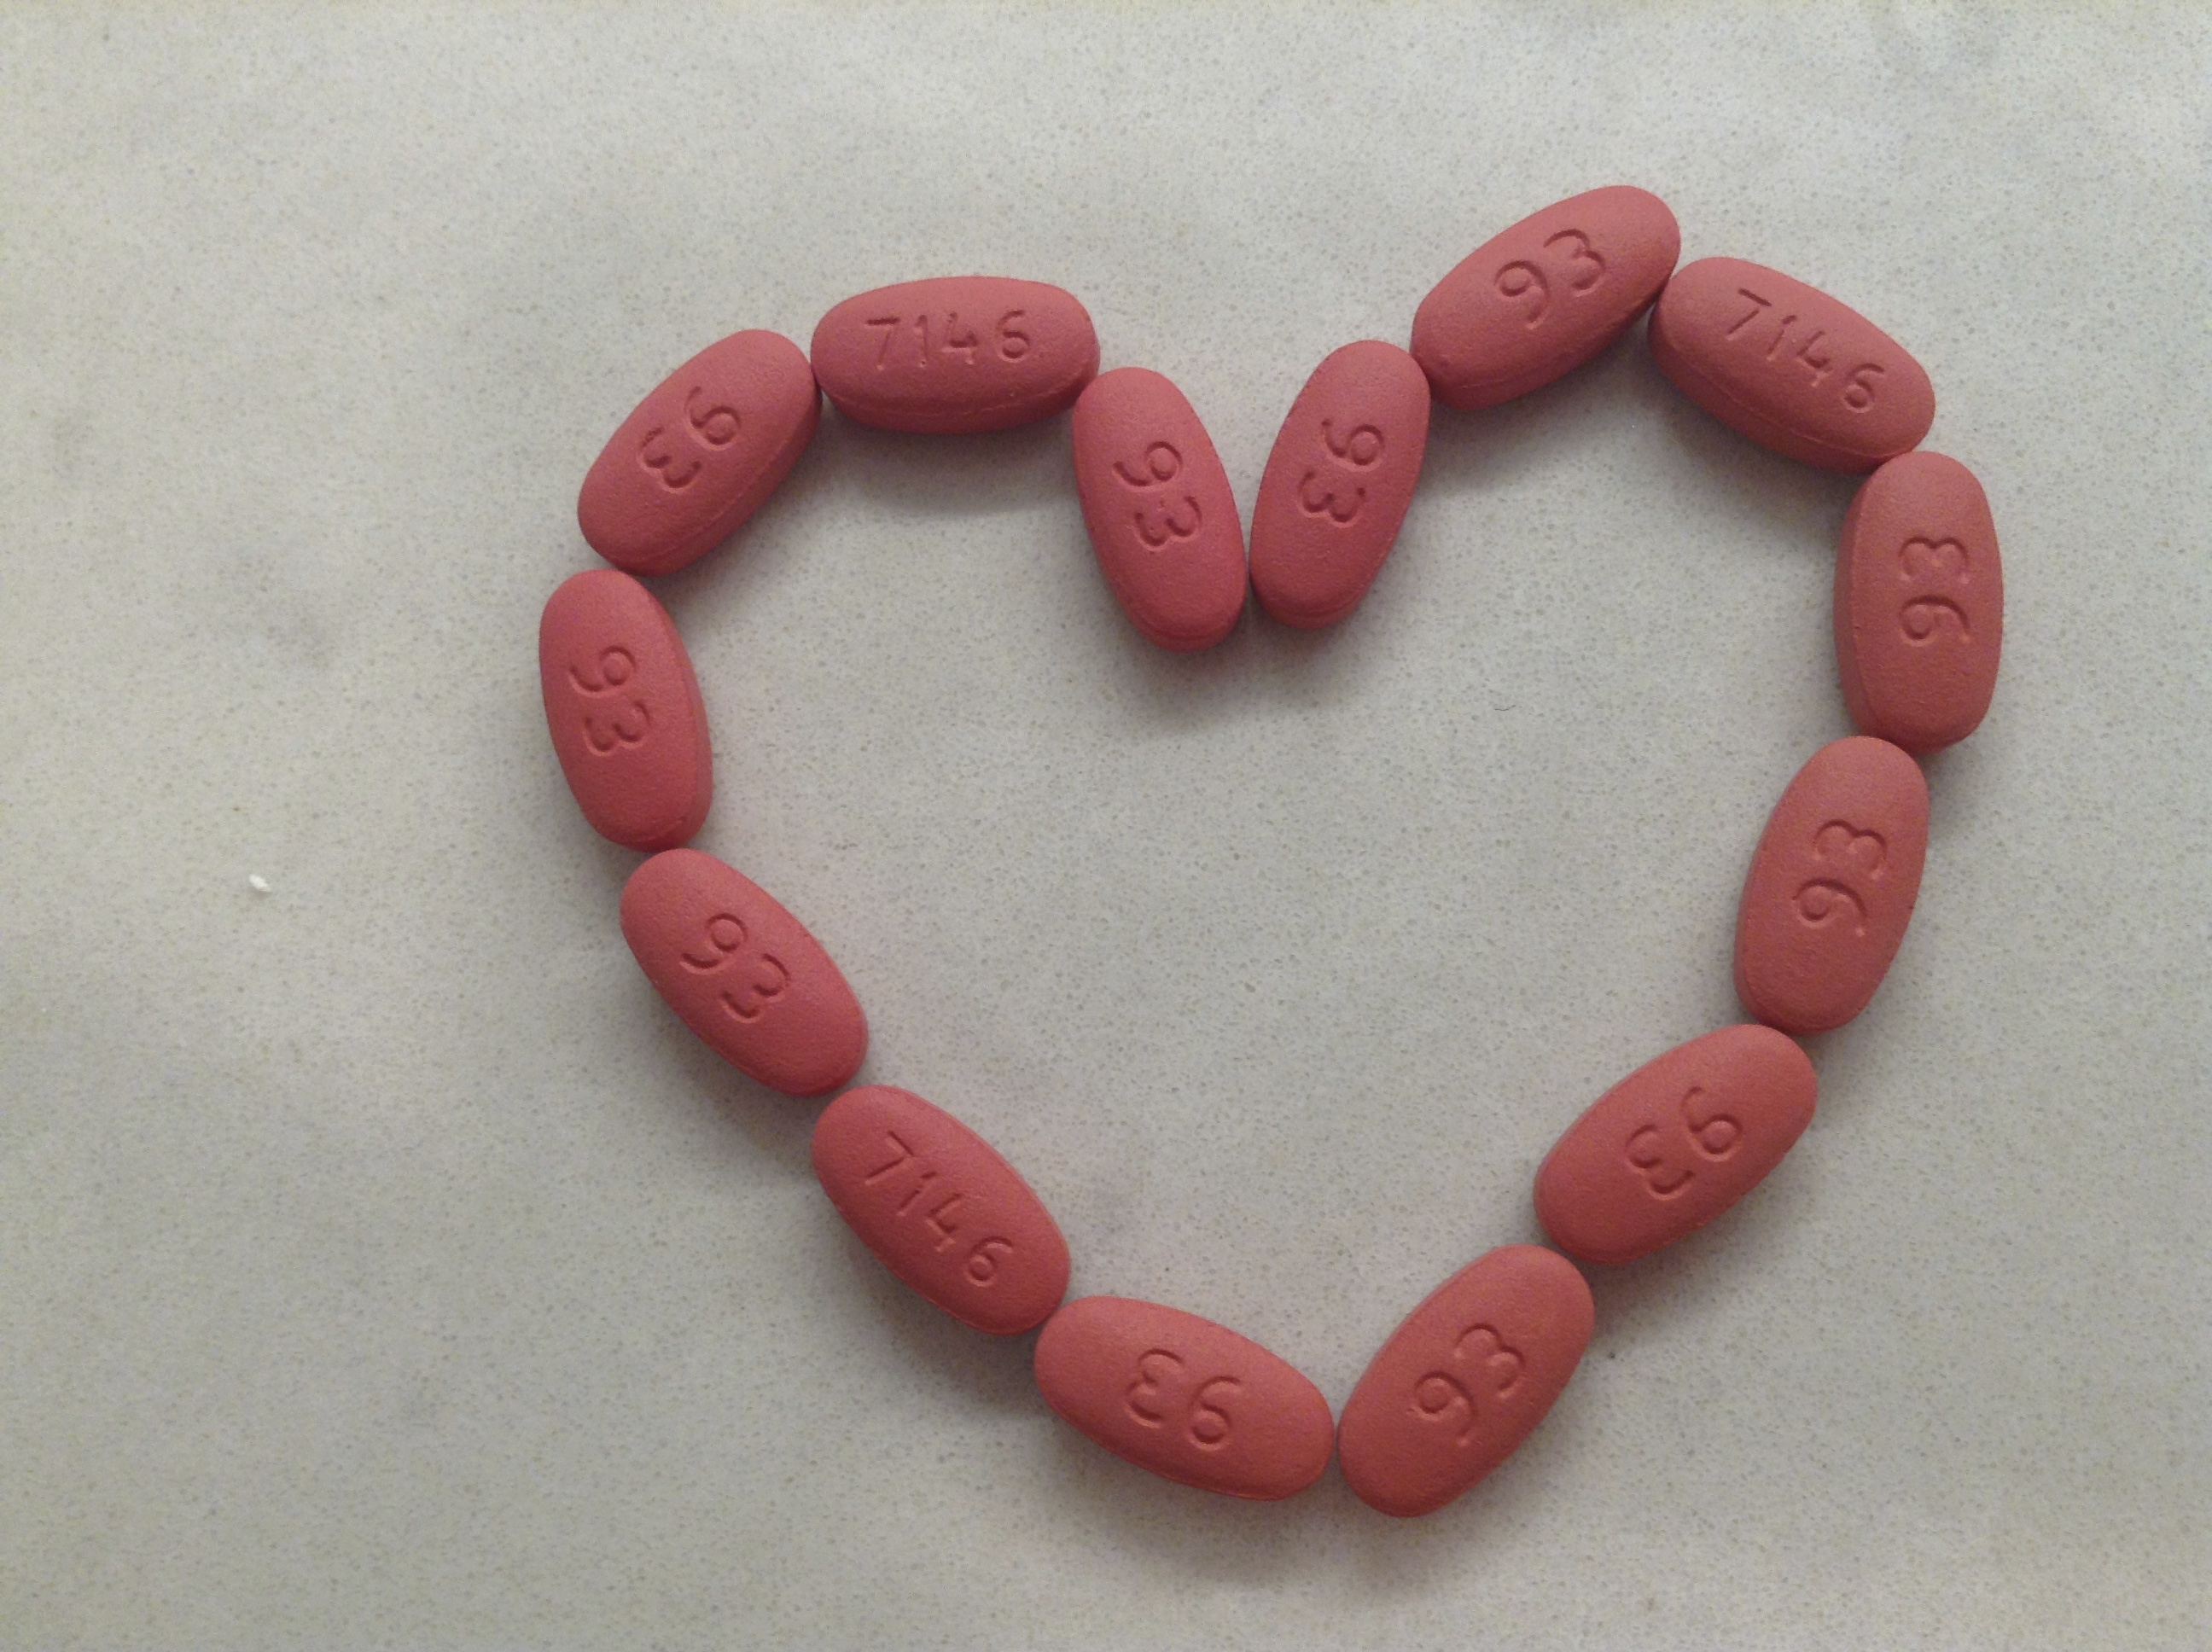 Is Azithromycin Good For Dogs